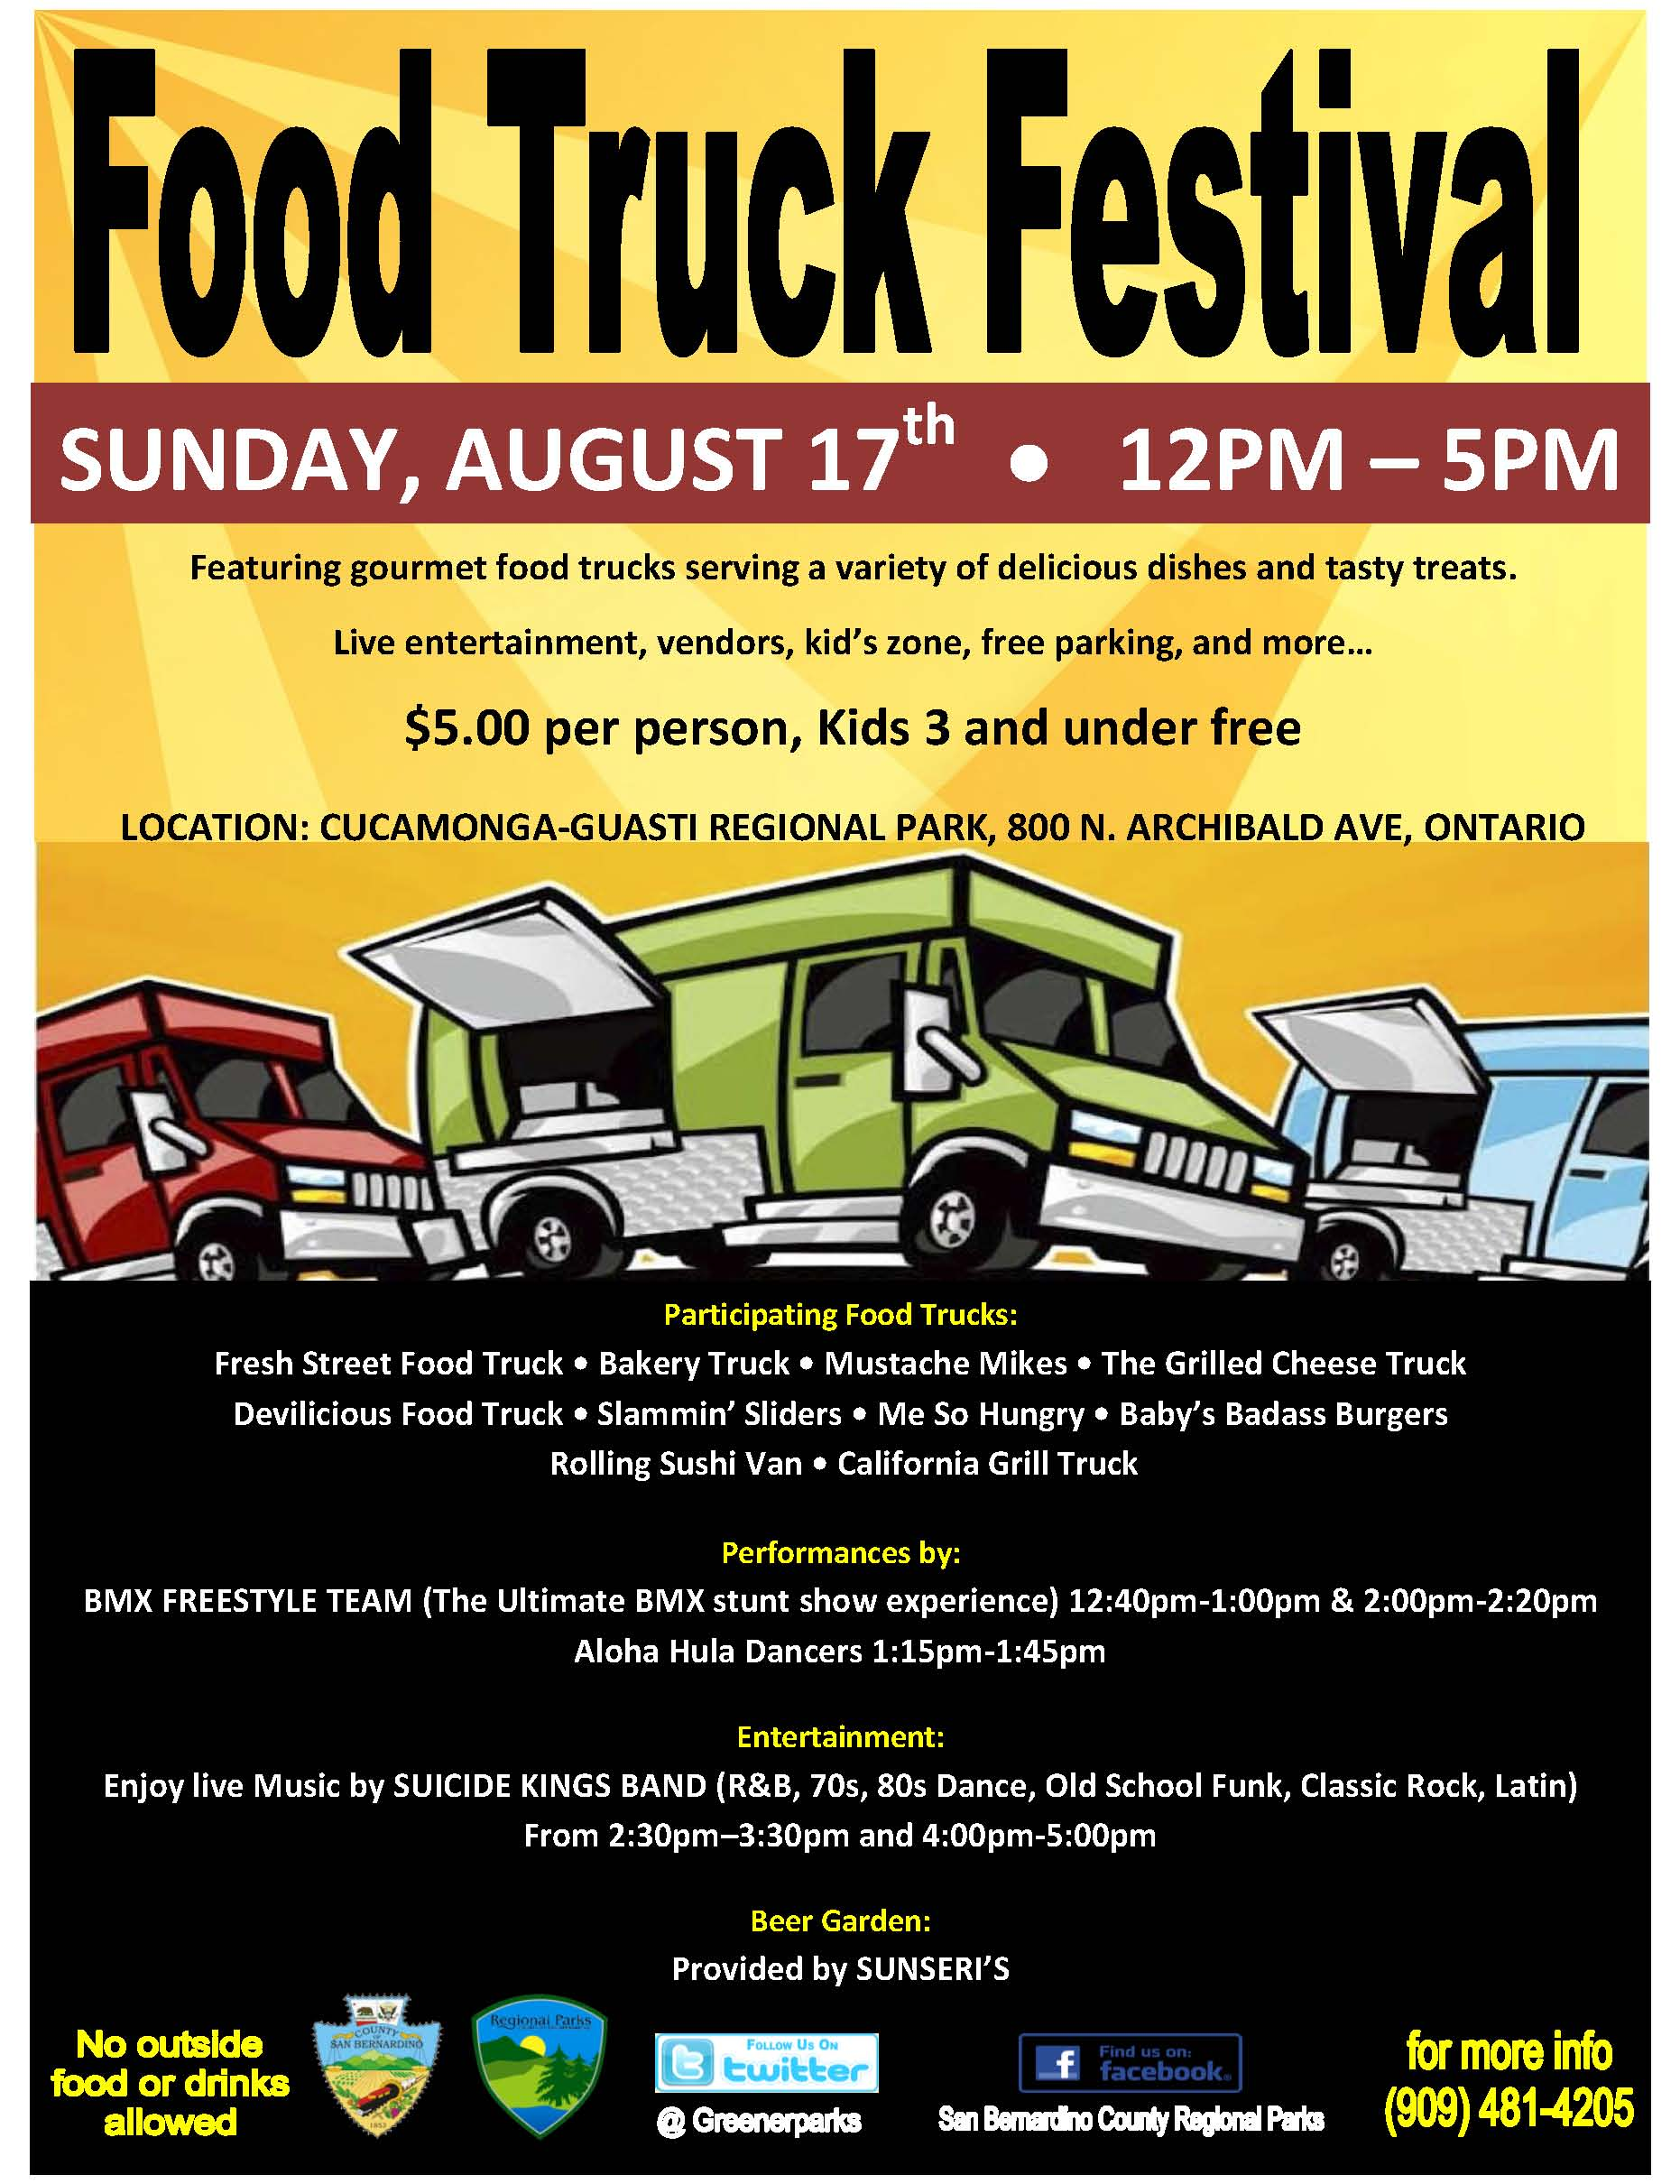 Stomach Grumbling Its Time To Eat At The Food Truck Festival On